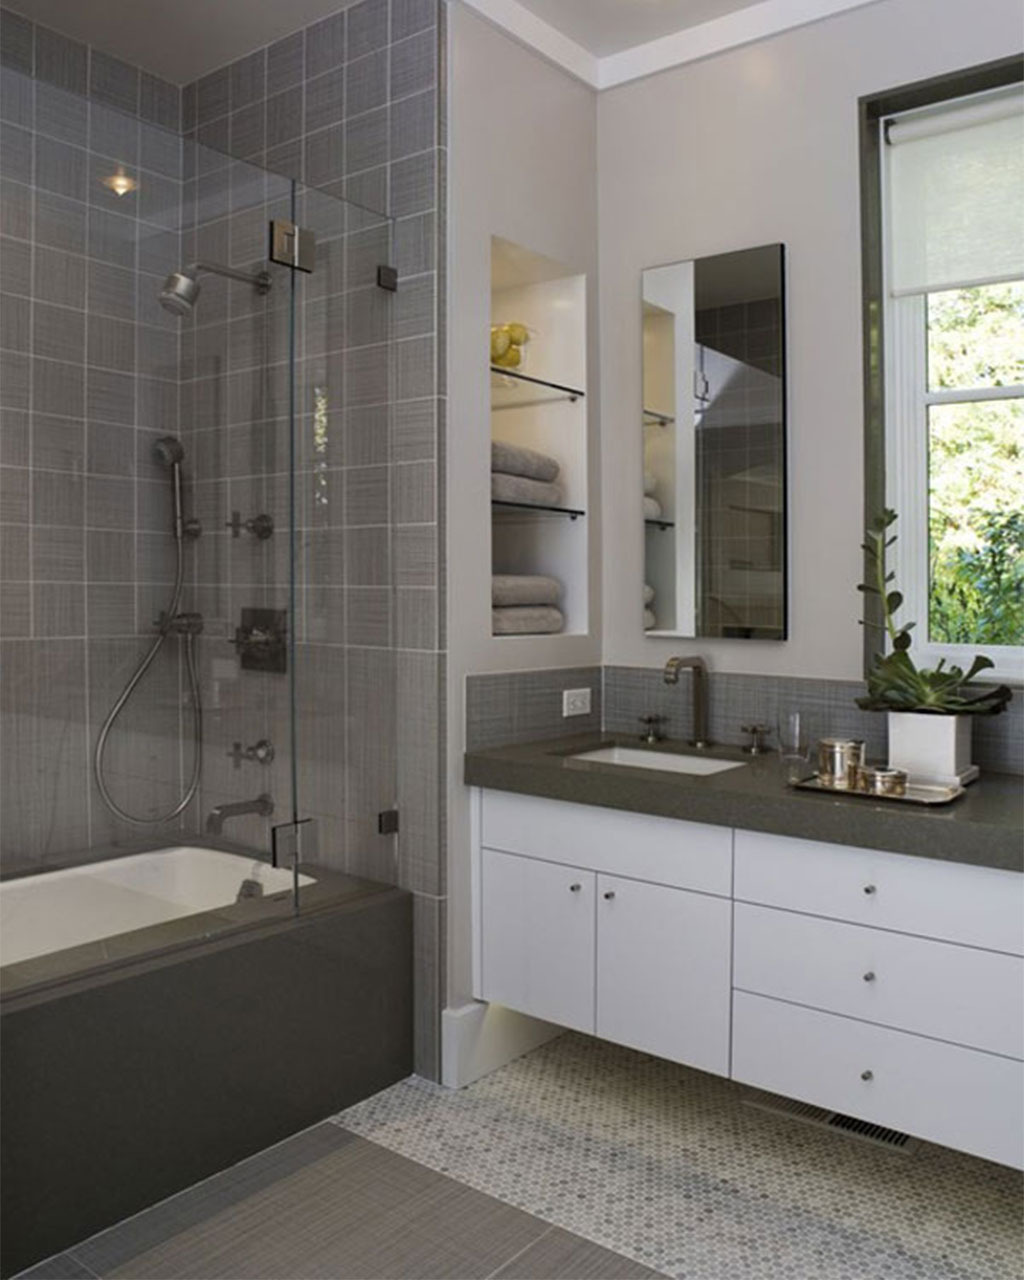 Inexpensive Bathroom Decor Best Of Creative Bathroom Ideas A Bud Decorations and Style